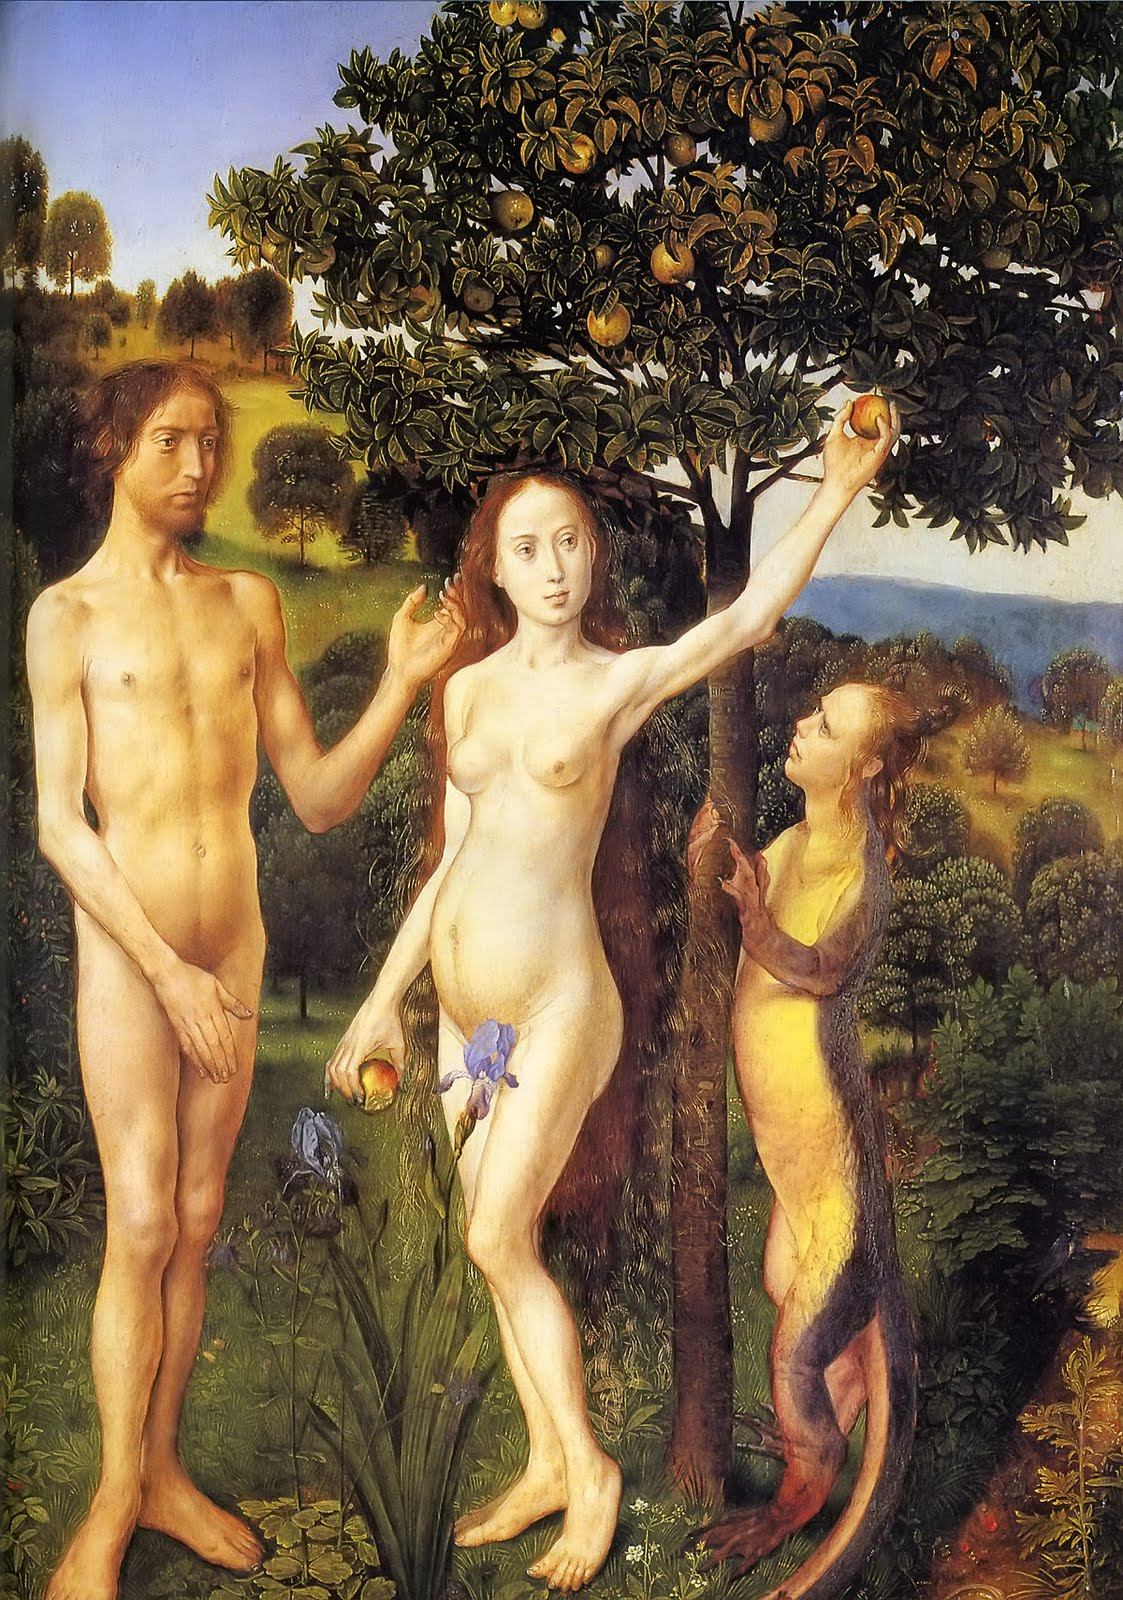 A few theological questions on adam and eve.....?